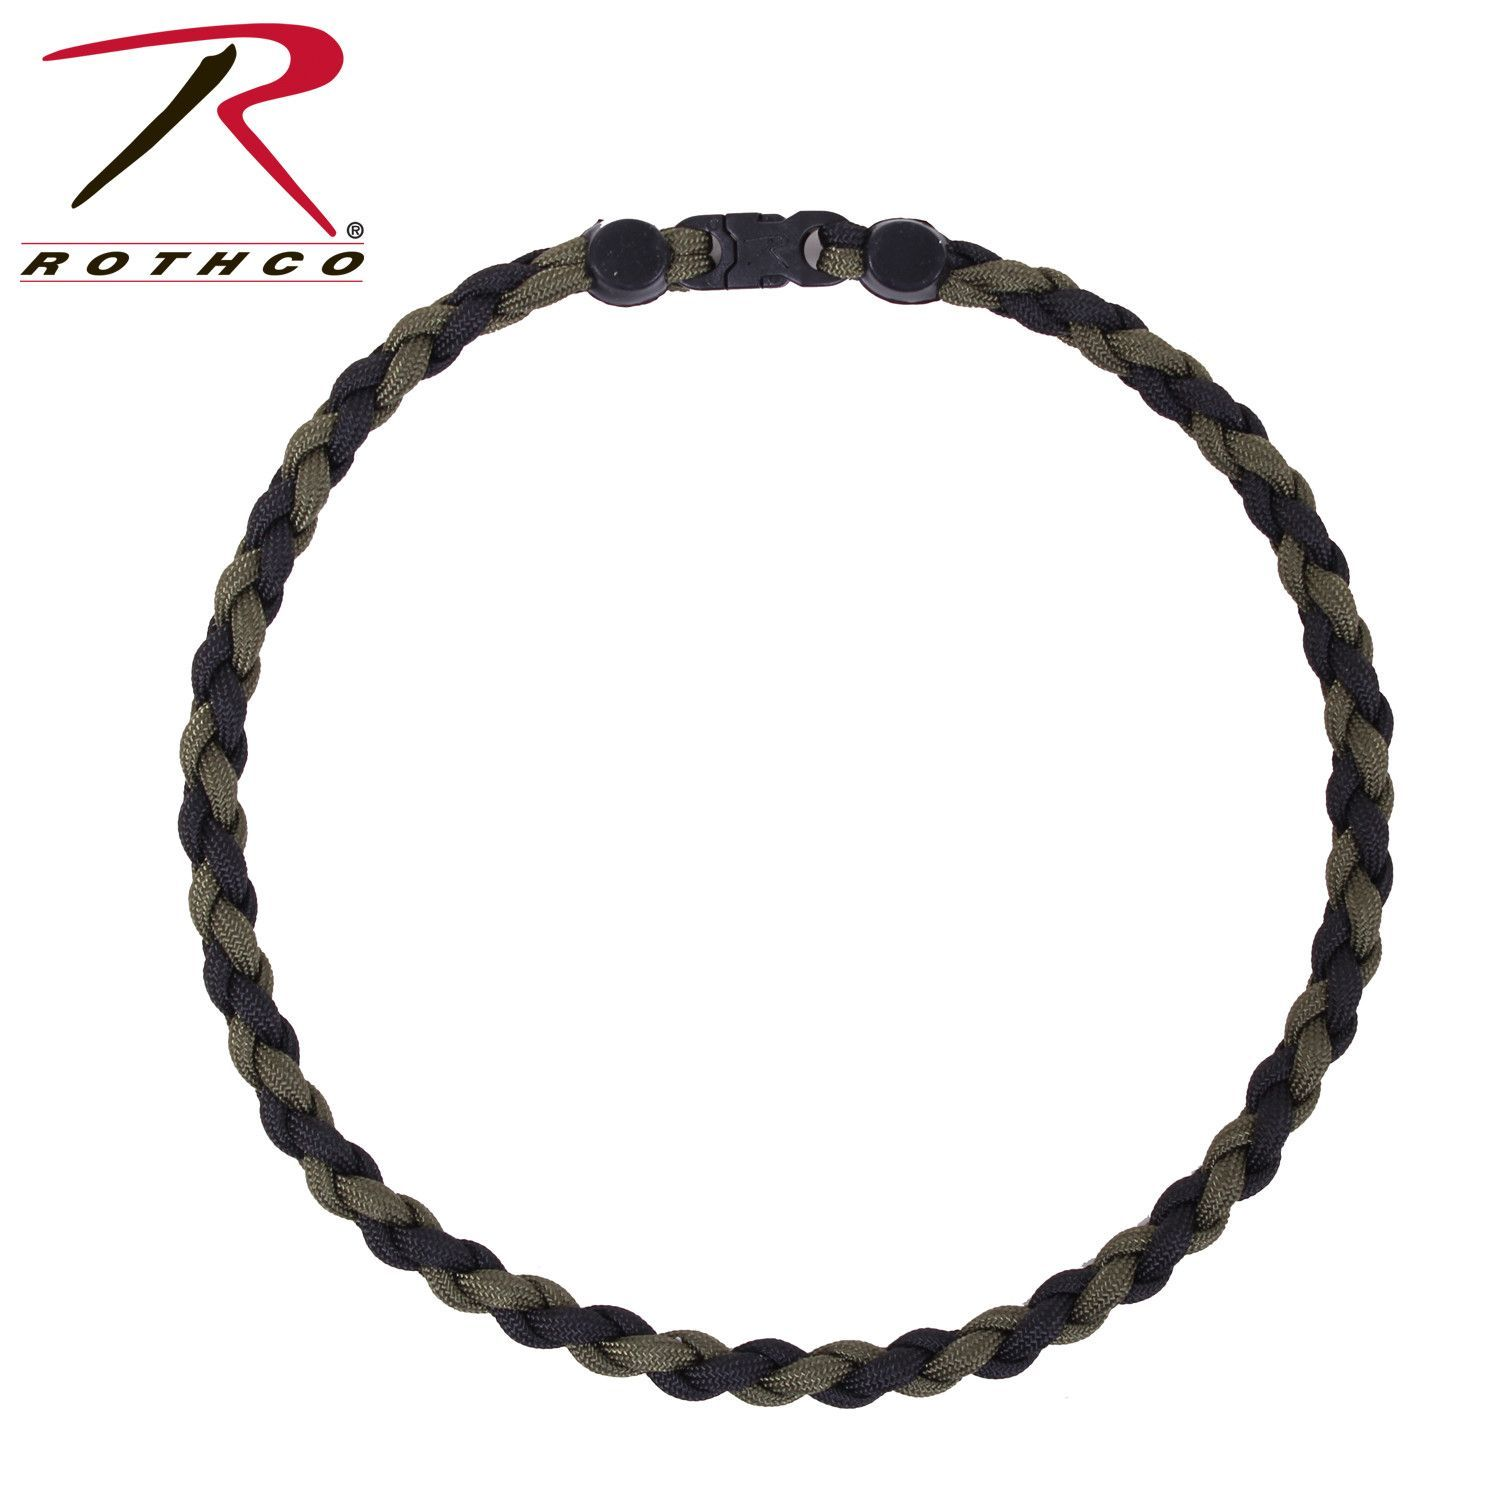 Rothco Paracord Necklace 22 Inch Olive Black